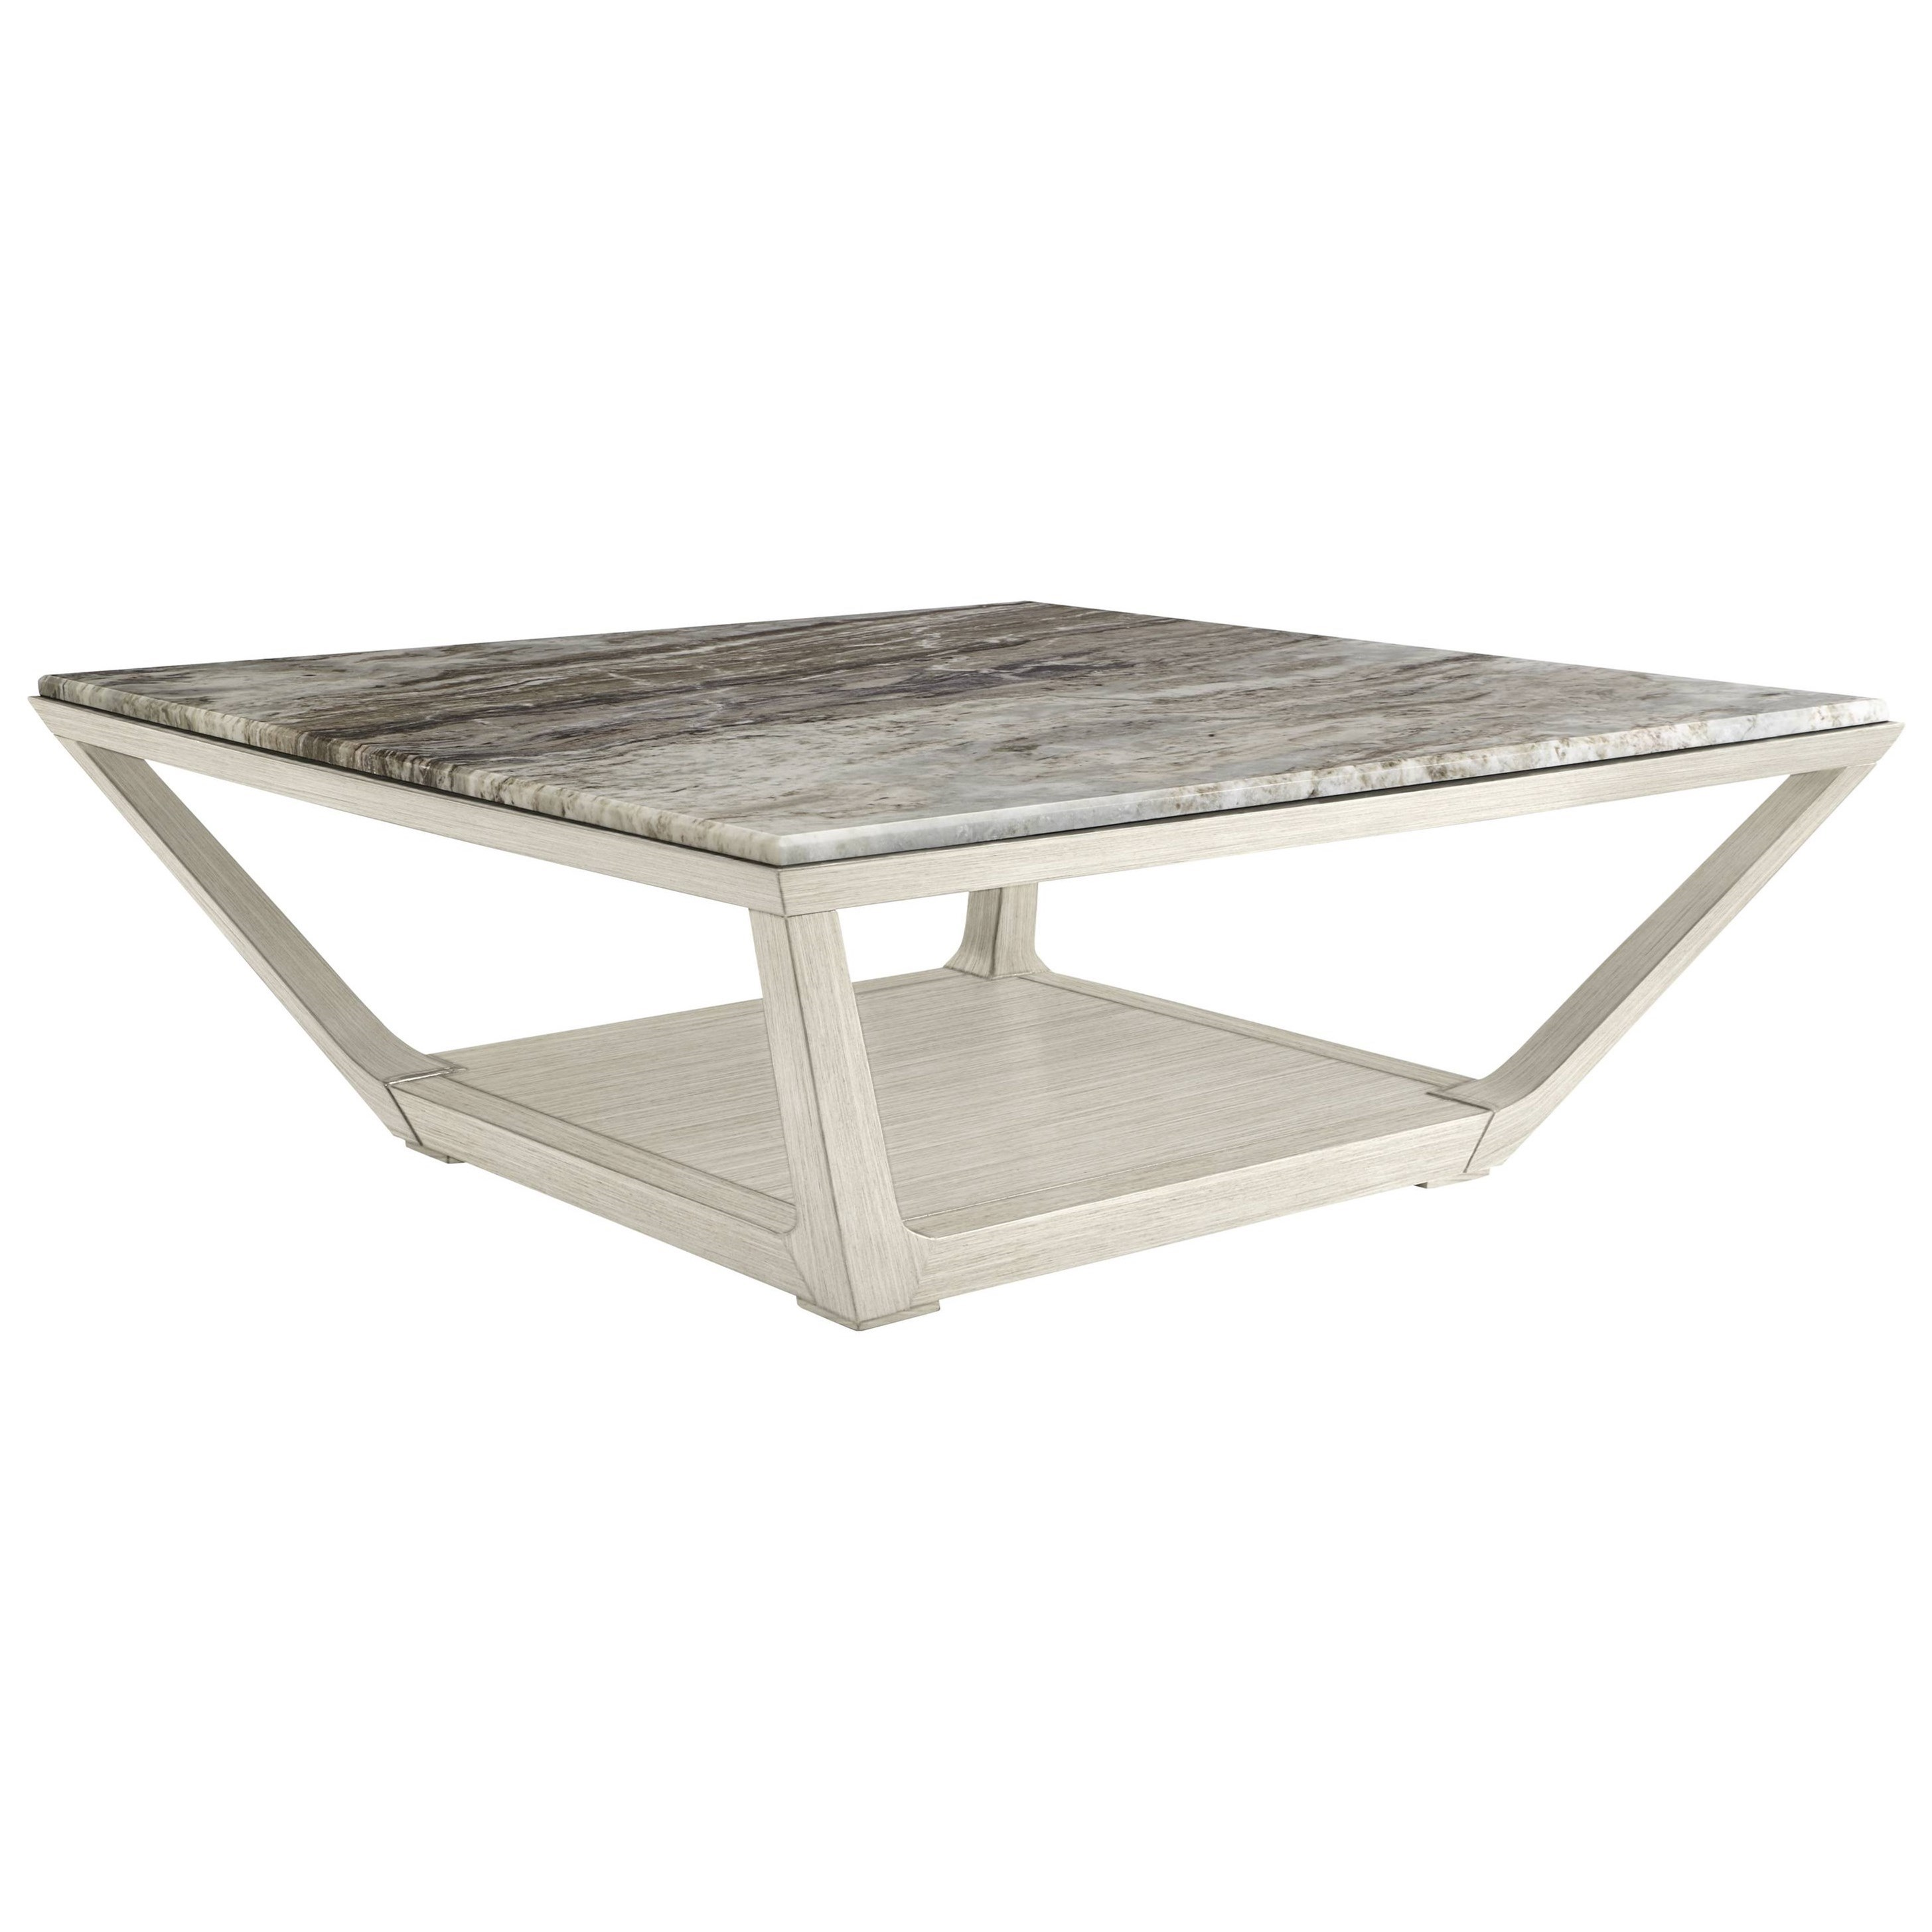 Stanley Furniture Coastal Living Oasis Poseidon Cocktail Table w/ Granite Top - Item Number: 527-55-02+75-102